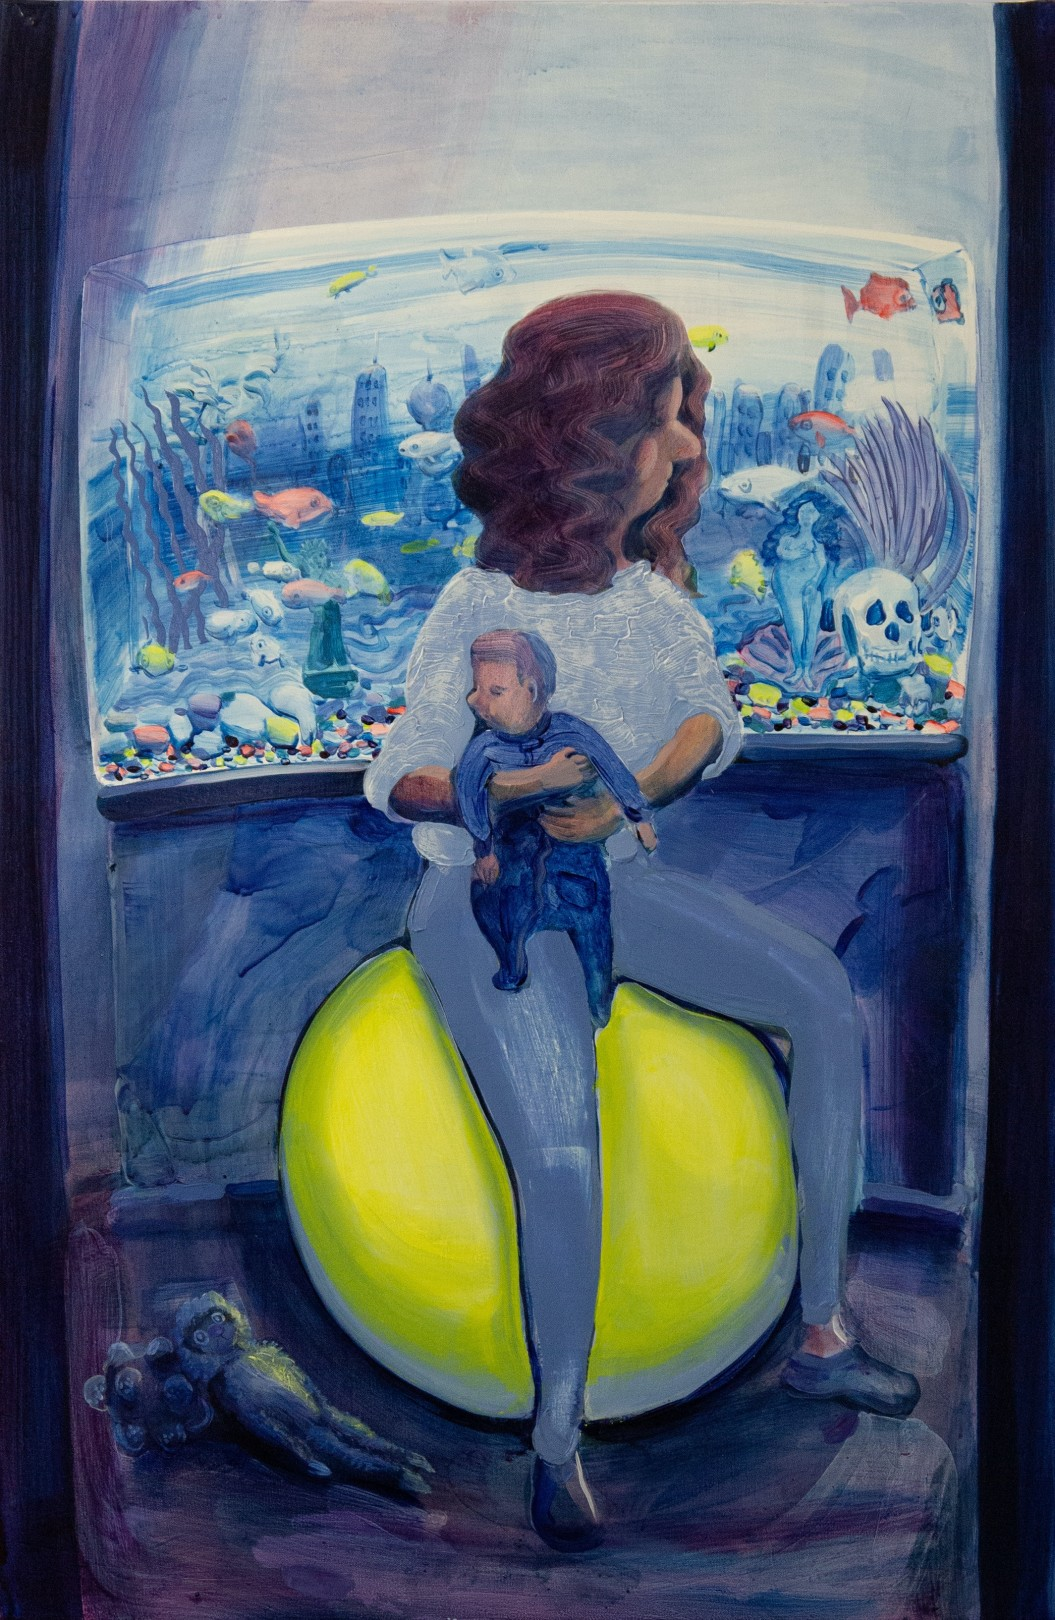 Hilary Doyle Mother and Child on a Yoga Ball II (Fish Tank), 2020 Acrylic on canvas 91.4 x 61 cm. / 36 x 24 in